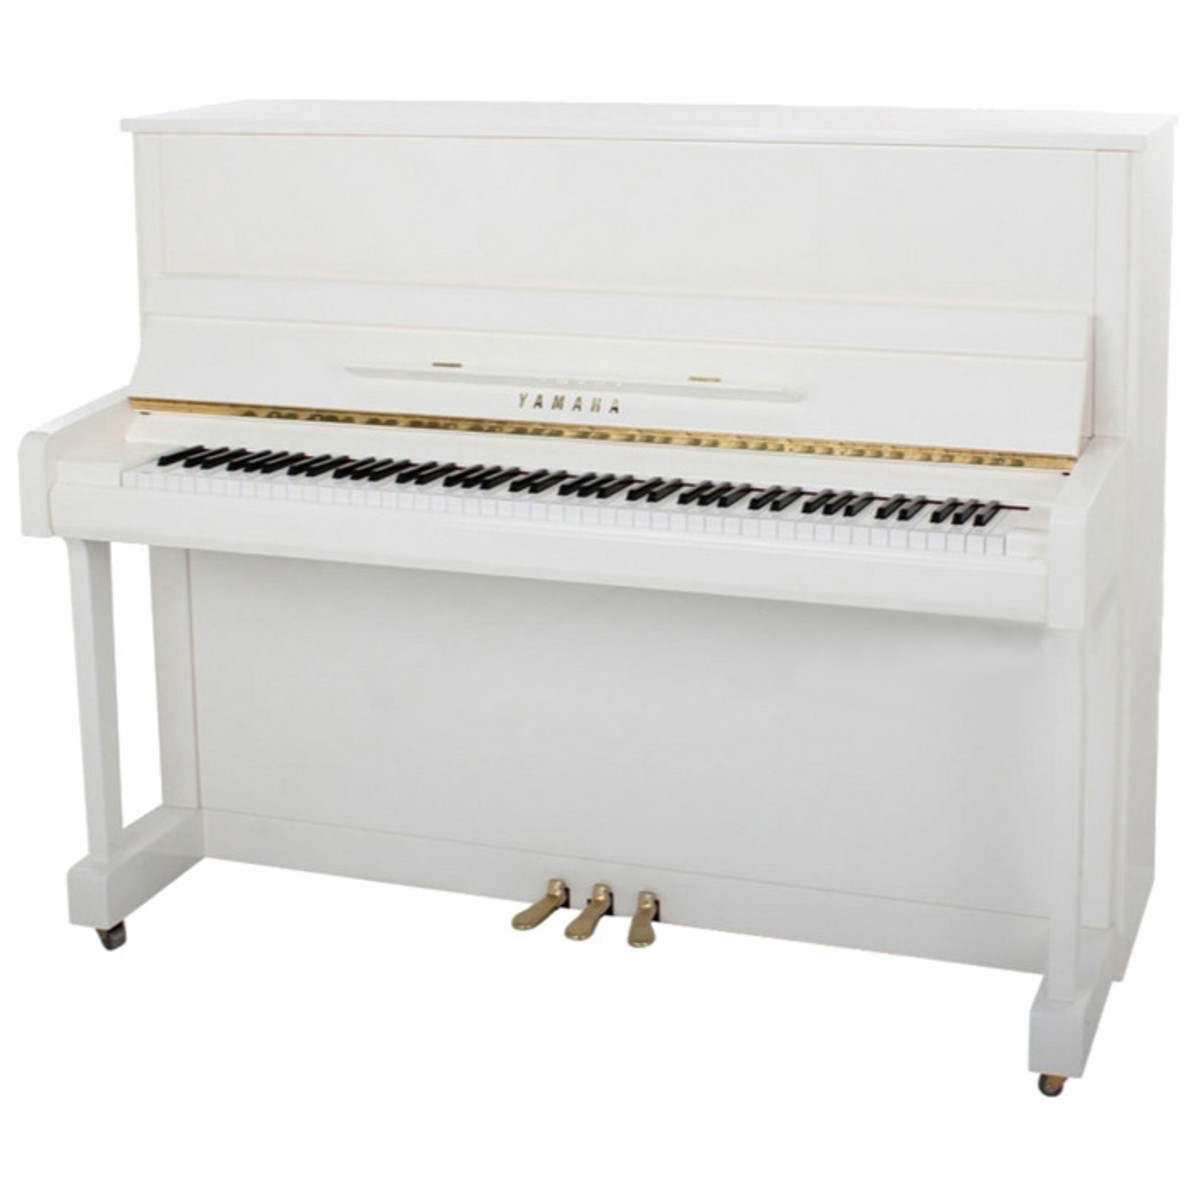 yamaha b2 upright acoustic piano polished white at gear4music. Black Bedroom Furniture Sets. Home Design Ideas